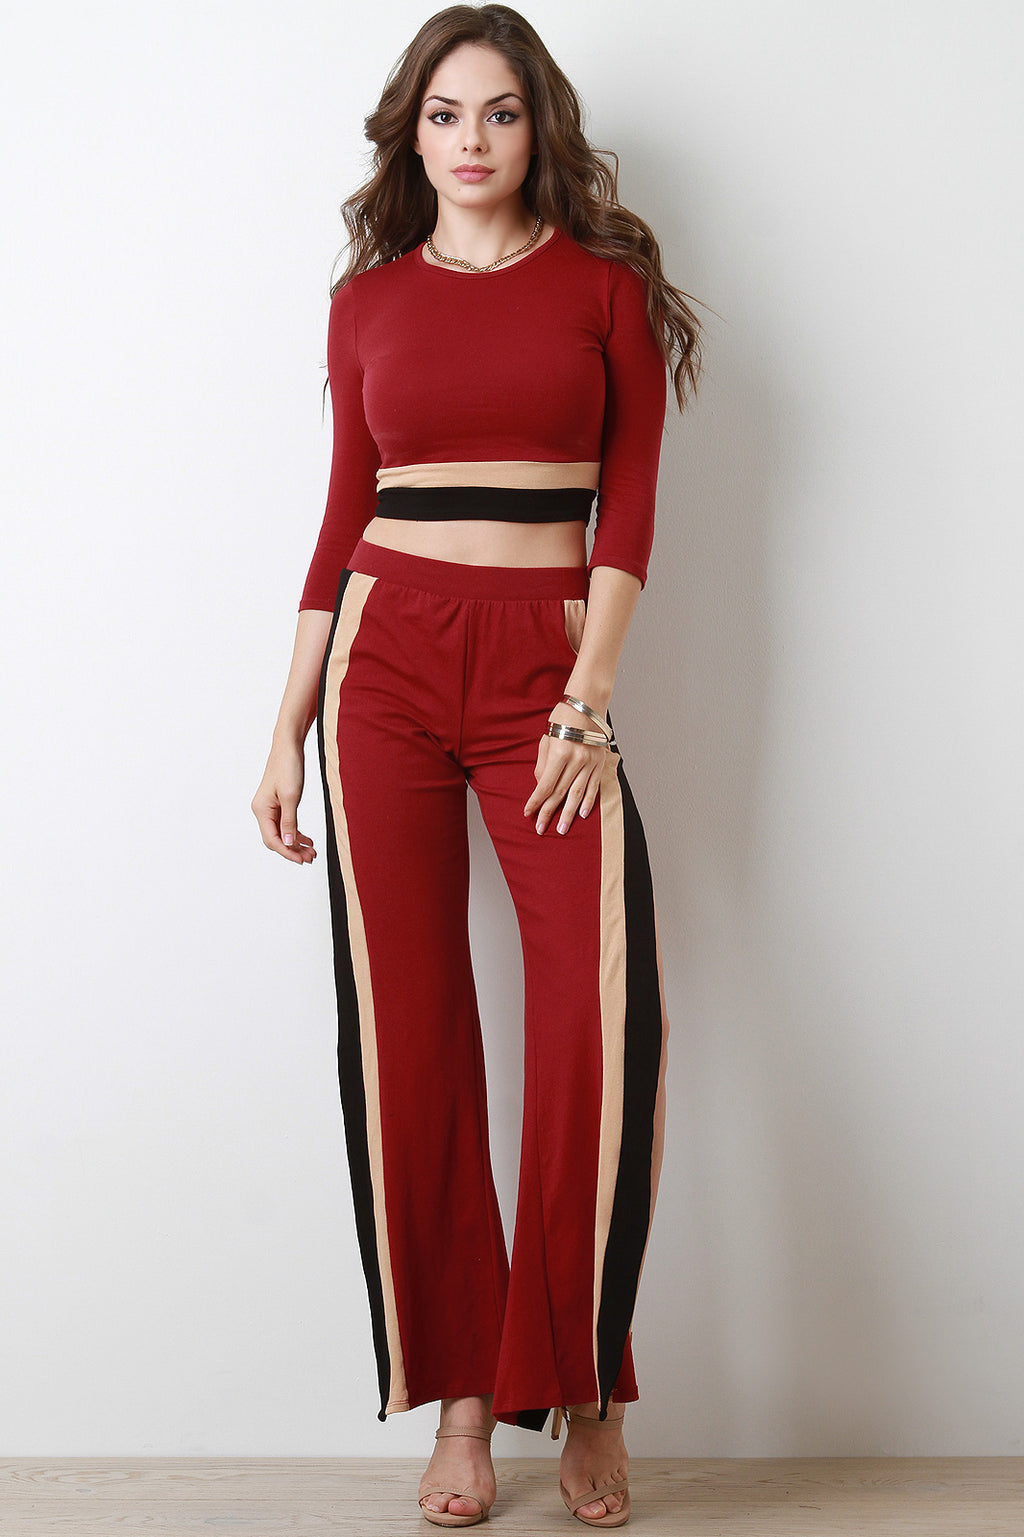 Colorblock Side Slit Flare High Waisted Pants